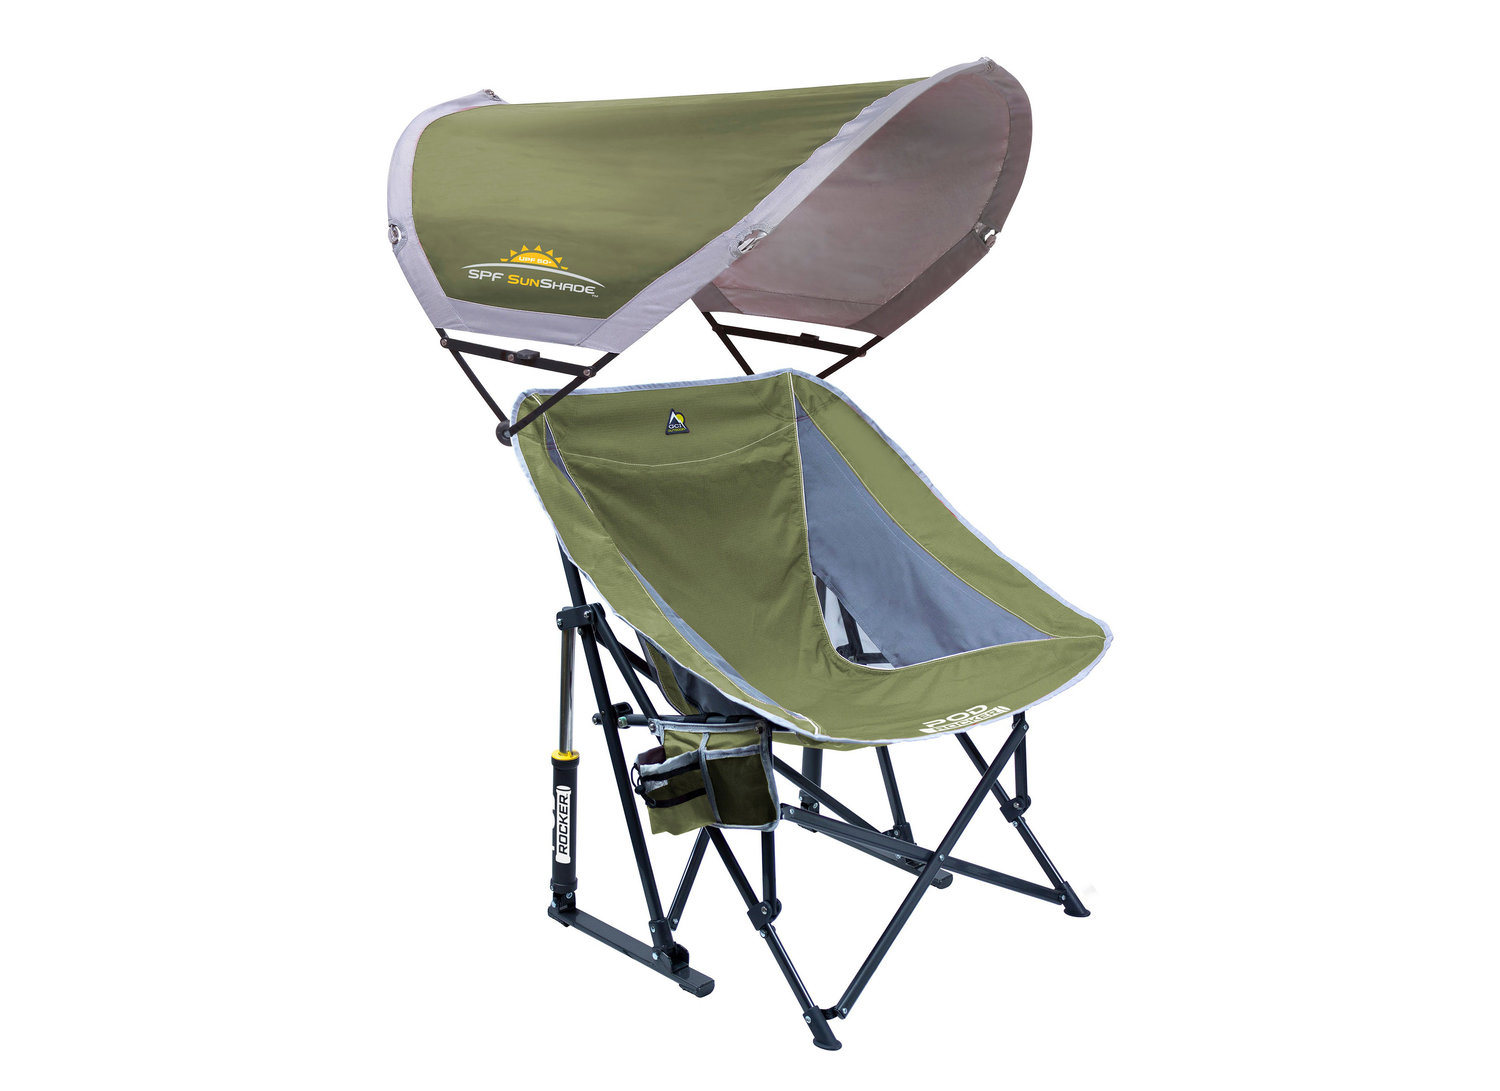 Awesome Gci Outdoor News From Outdoor Brands Verde Brand Machost Co Dining Chair Design Ideas Machostcouk